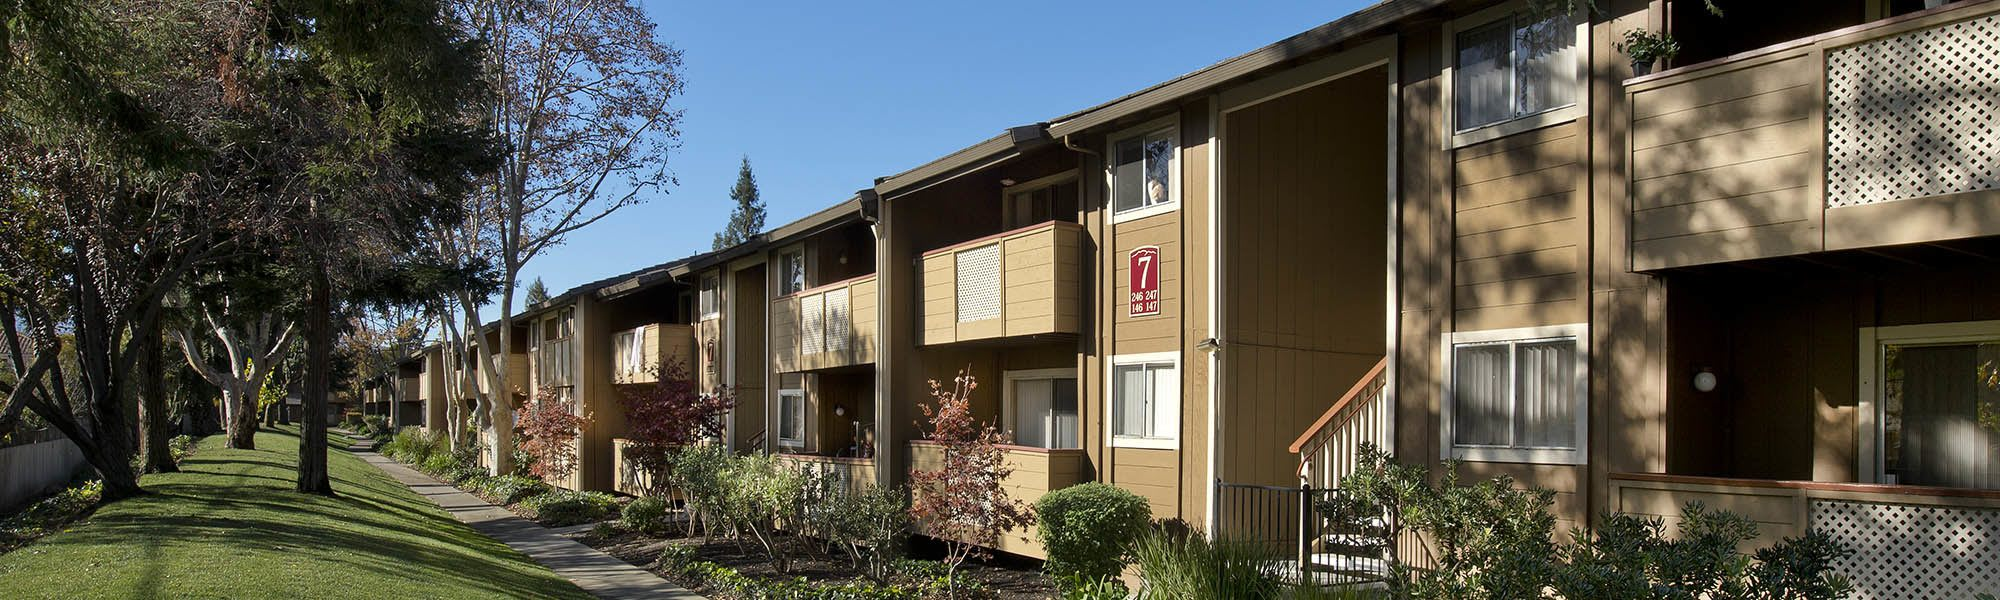 Learn about our exciting programs at Shadow Oaks Apartment Homes on our website